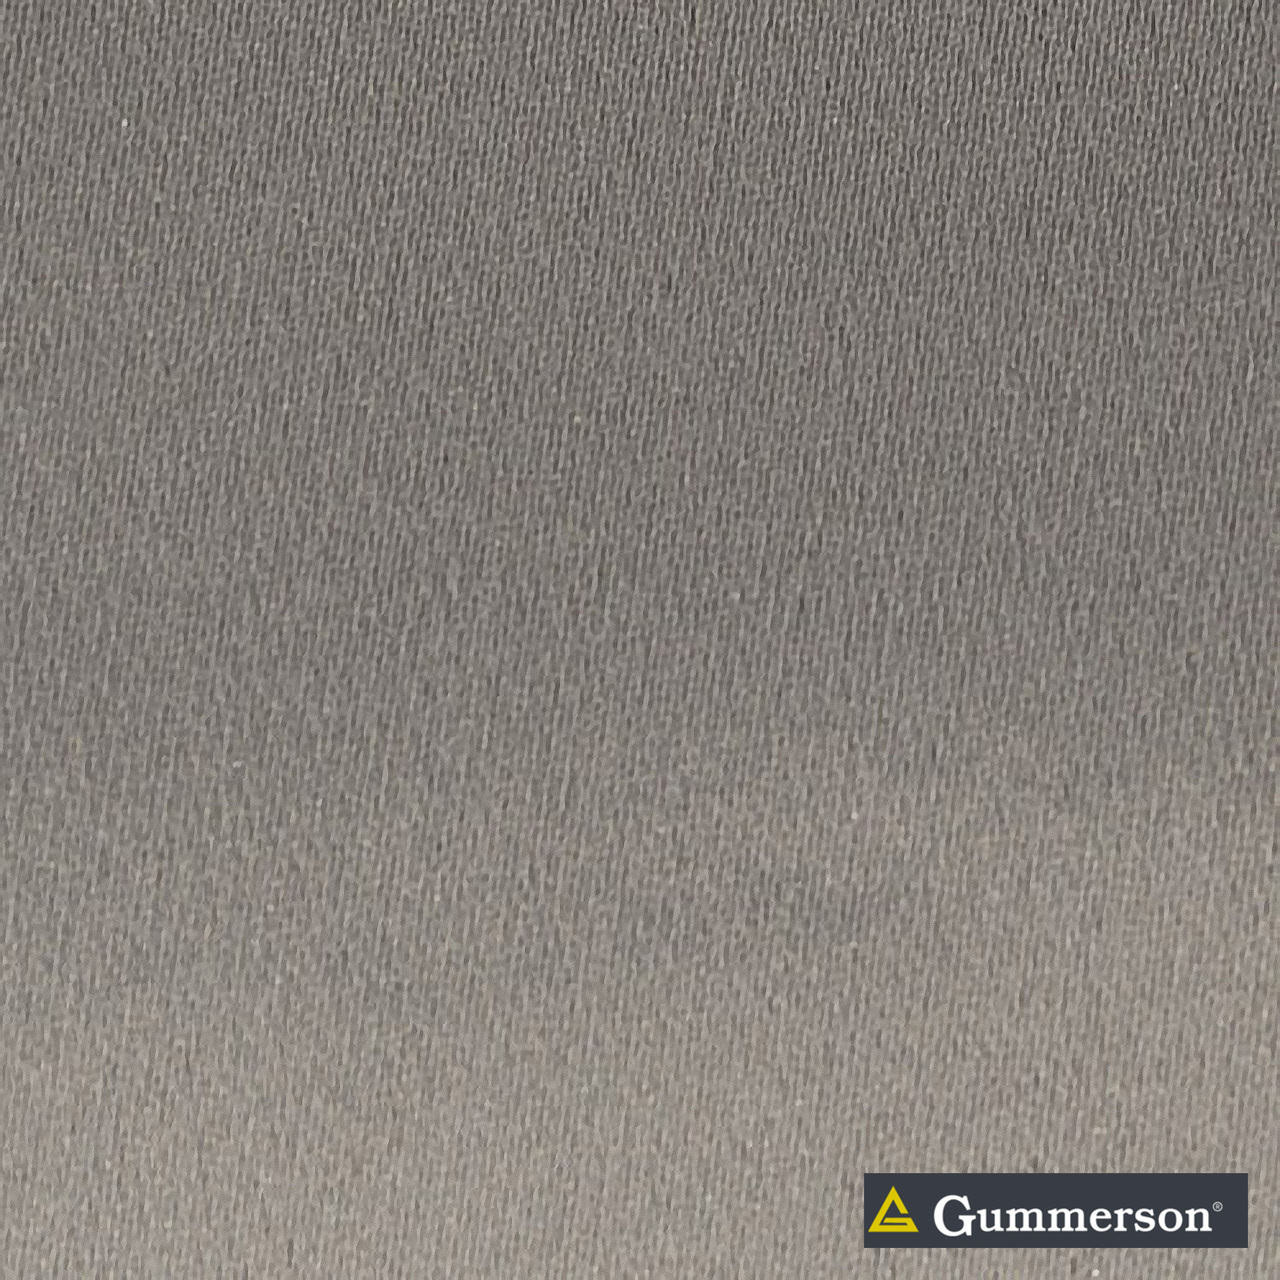 Gummerson - Continuous-Softweave Buffalo Room-Darkening 290cm  | Curtain Fabric - Fire Retardant, Plain, Black - Charcoal, Synthetic, Transitional, Washable, Weave, Softweave